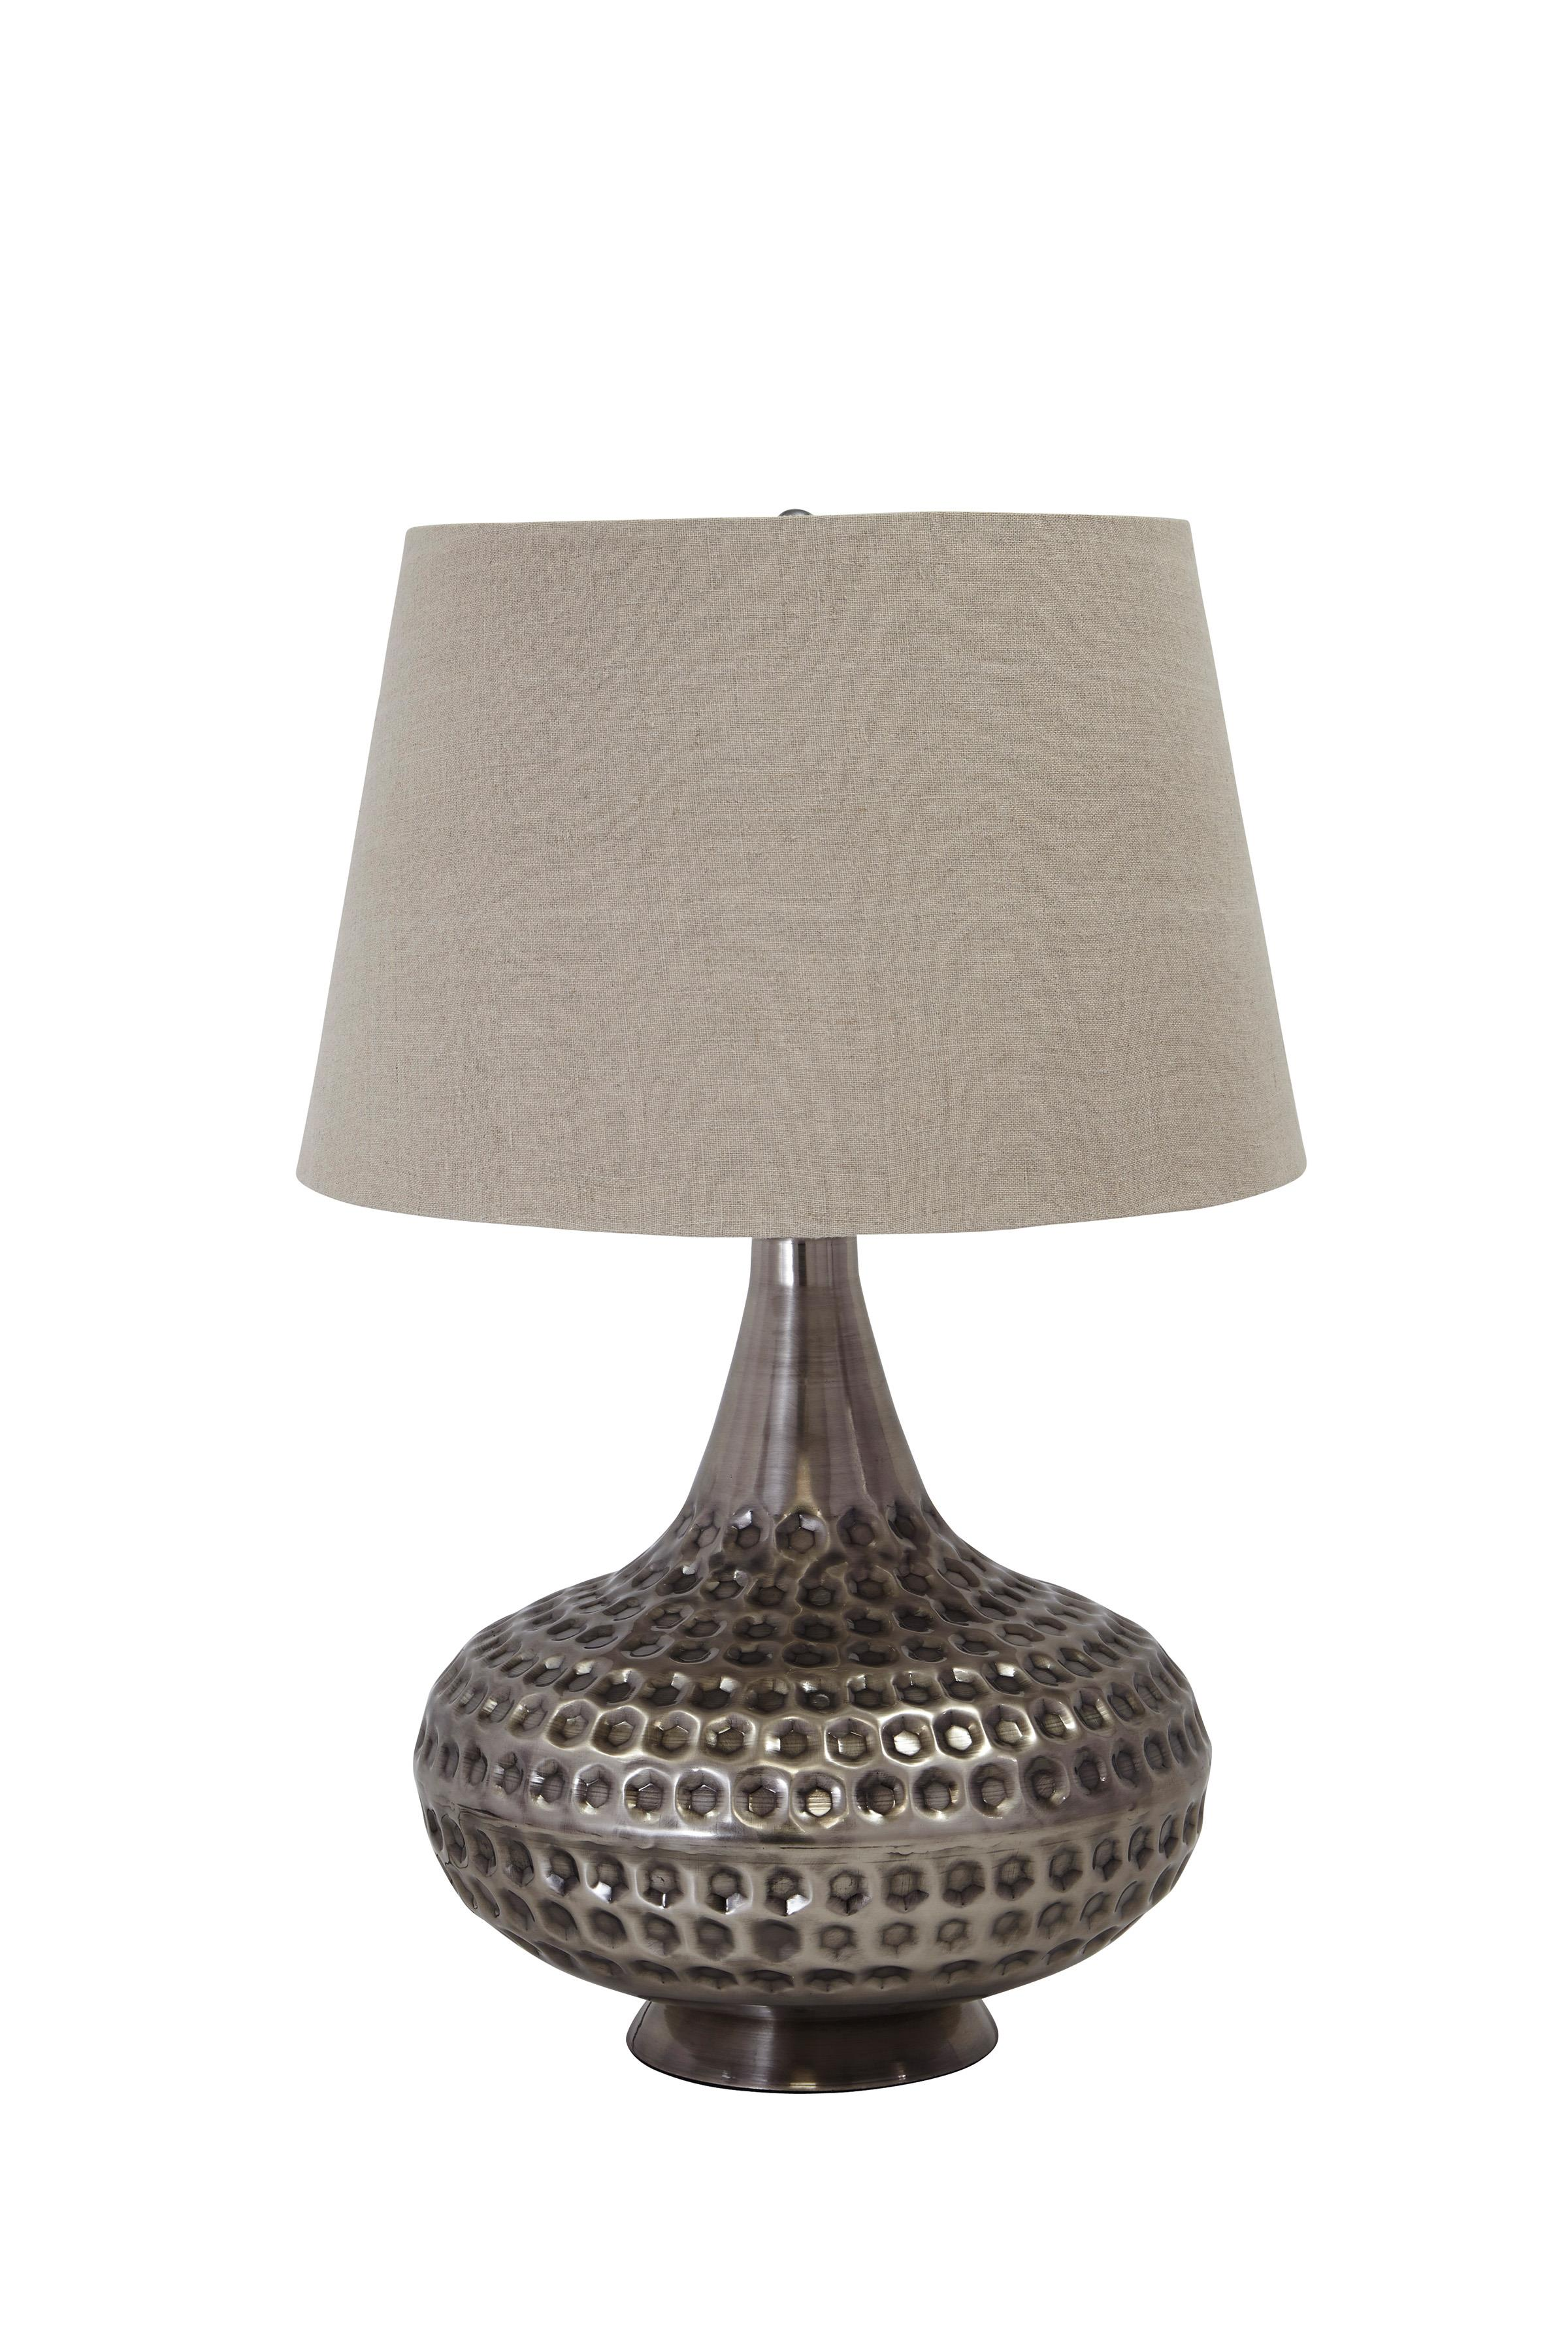 Signature Design By Ashley Lamps Contemporary Sarely